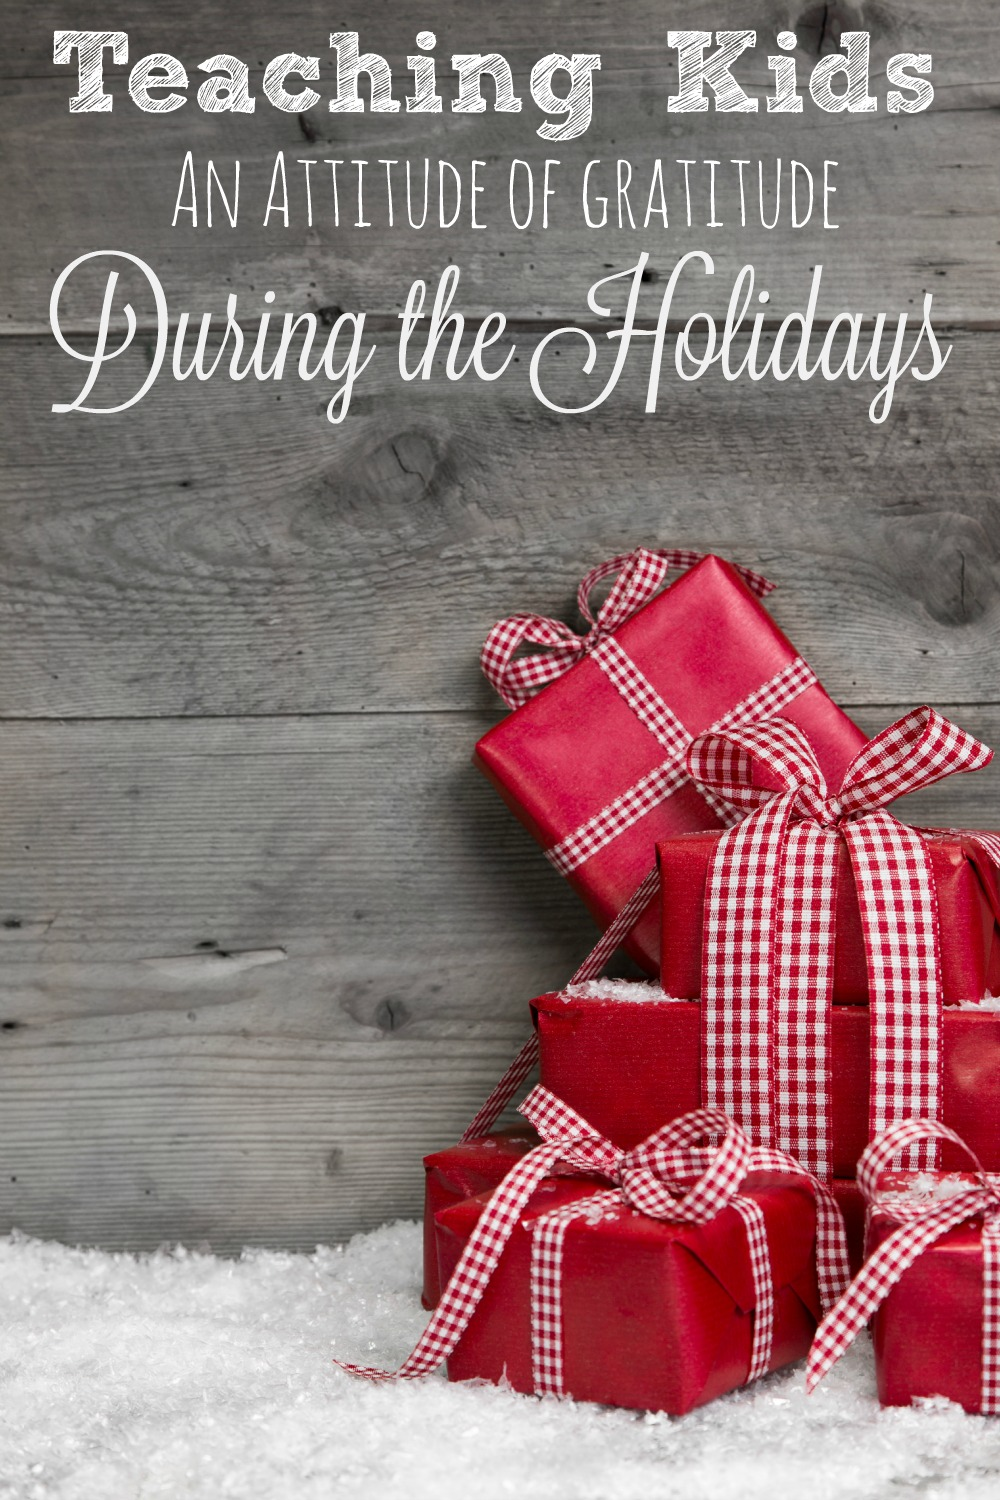 Teaching Kids an Attitude of Gratitude During the Holidays